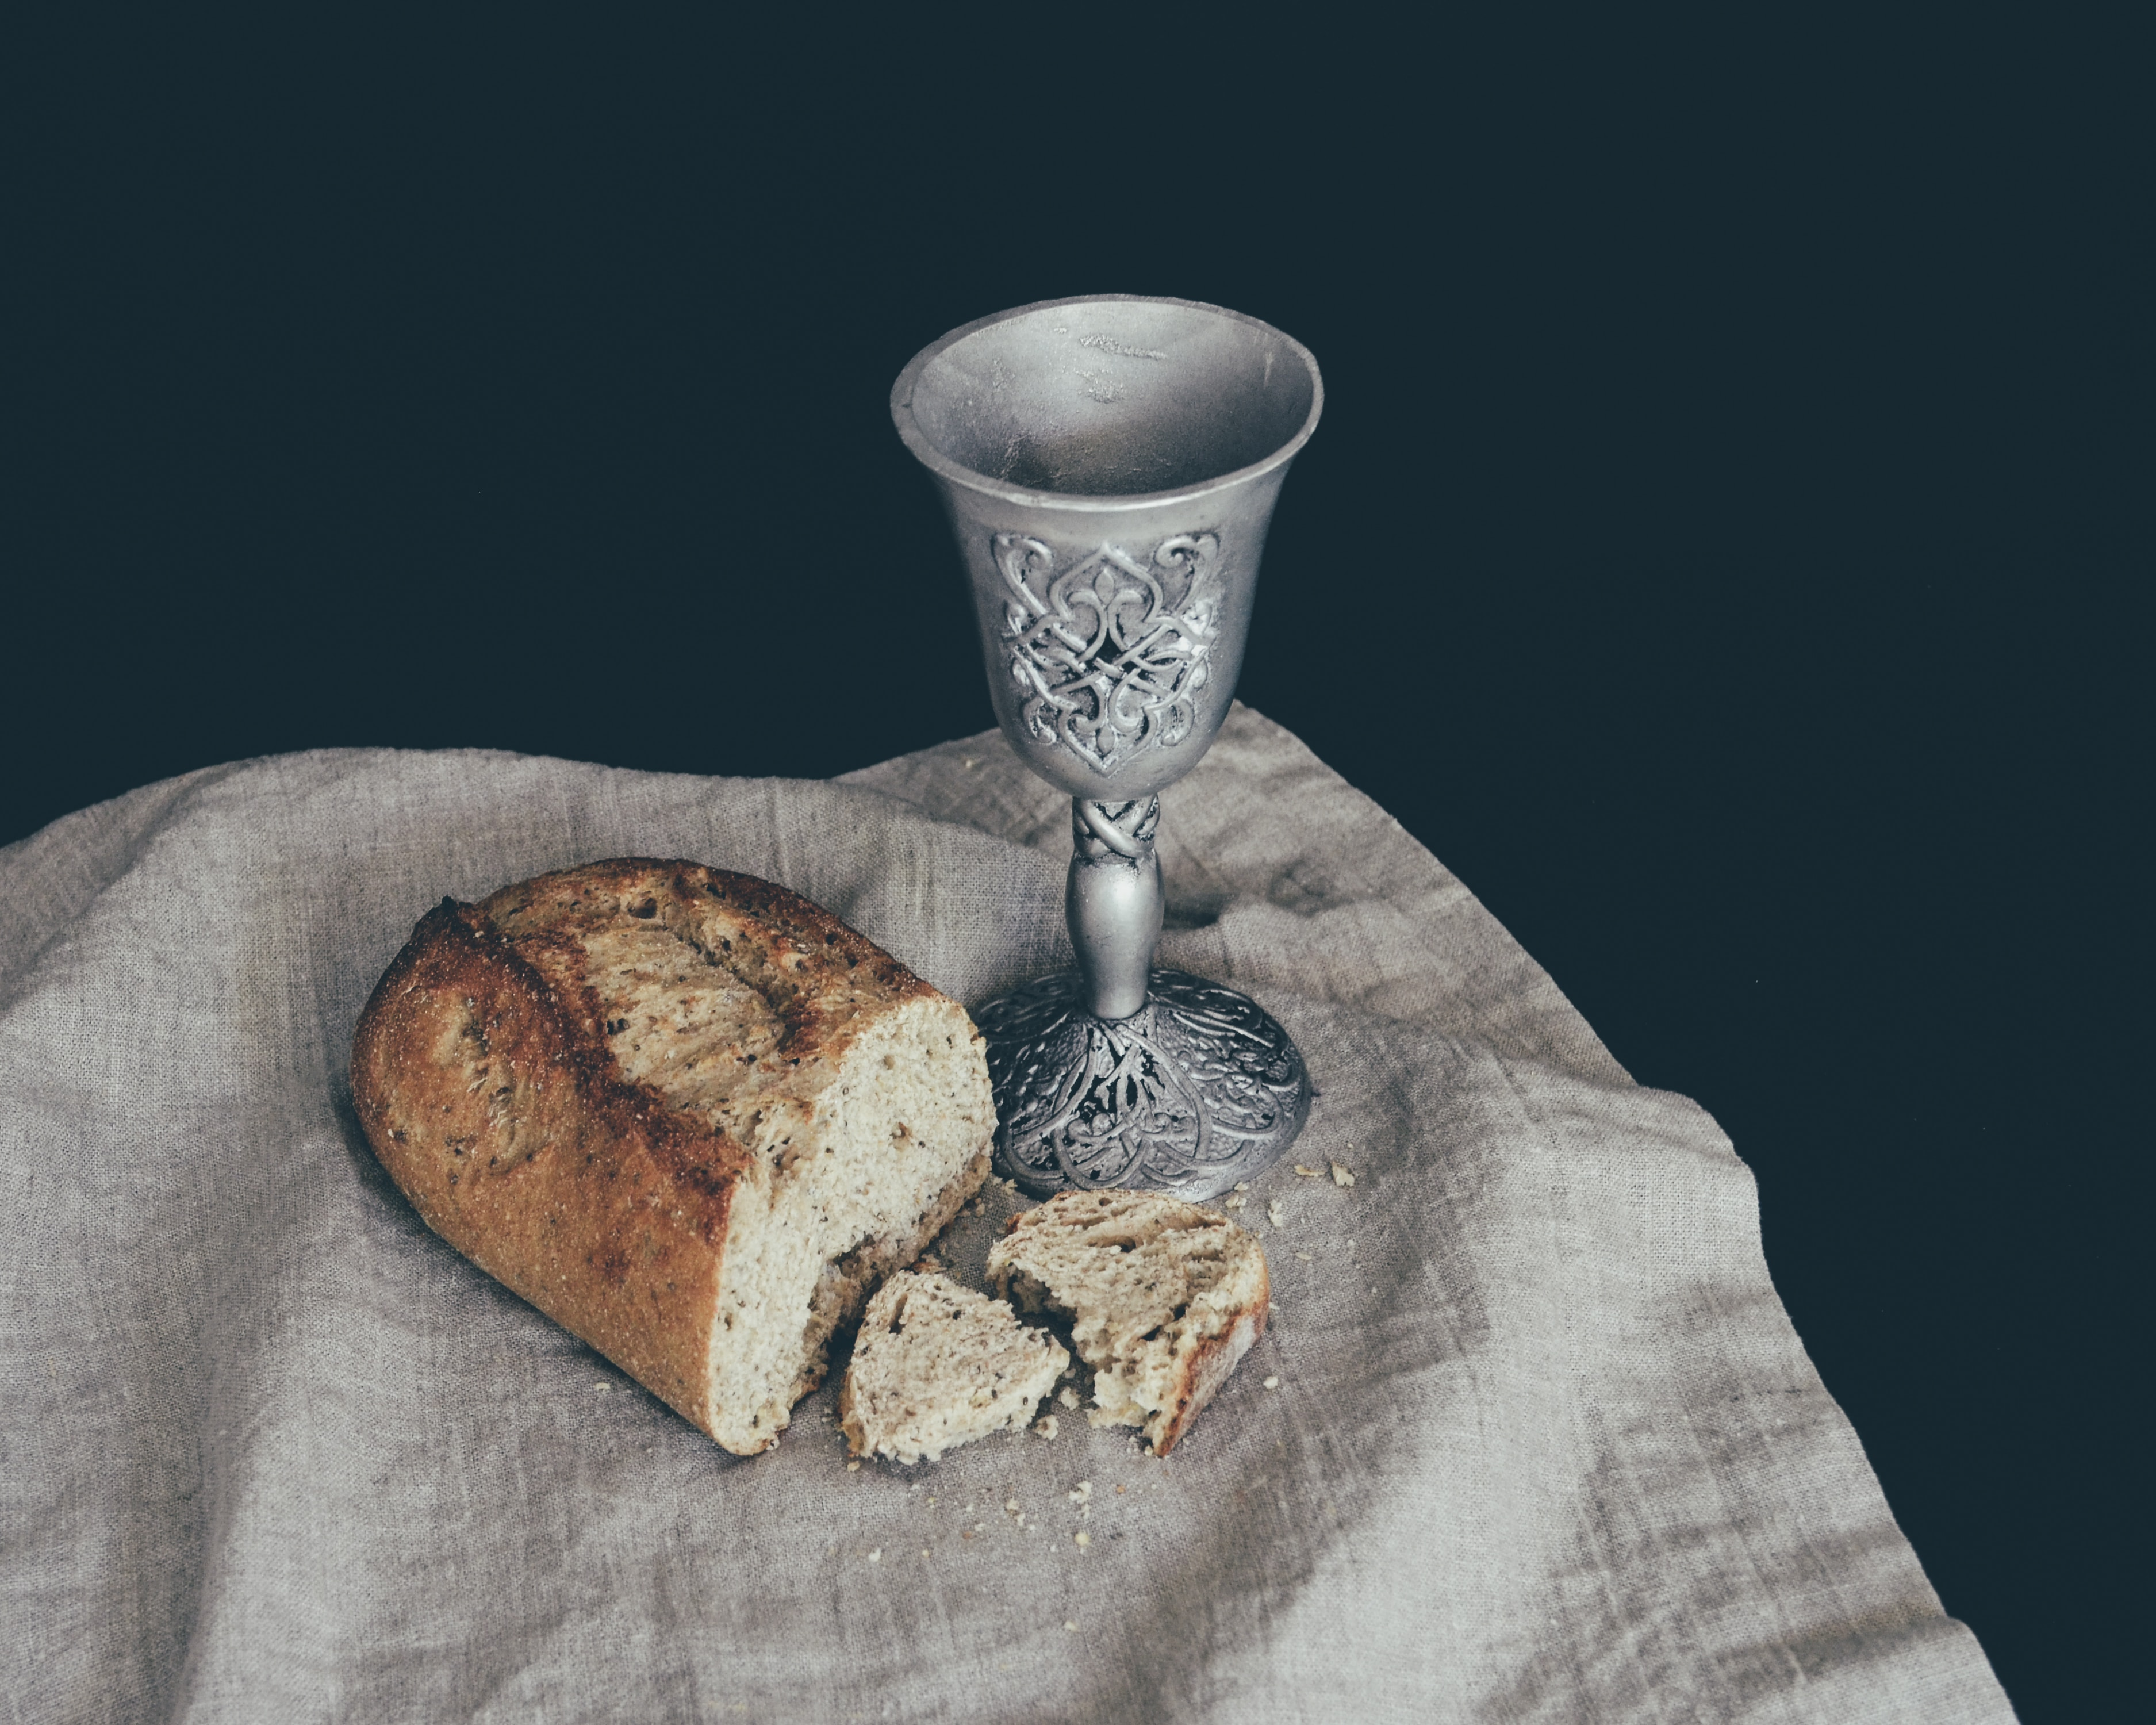 lord's supper image